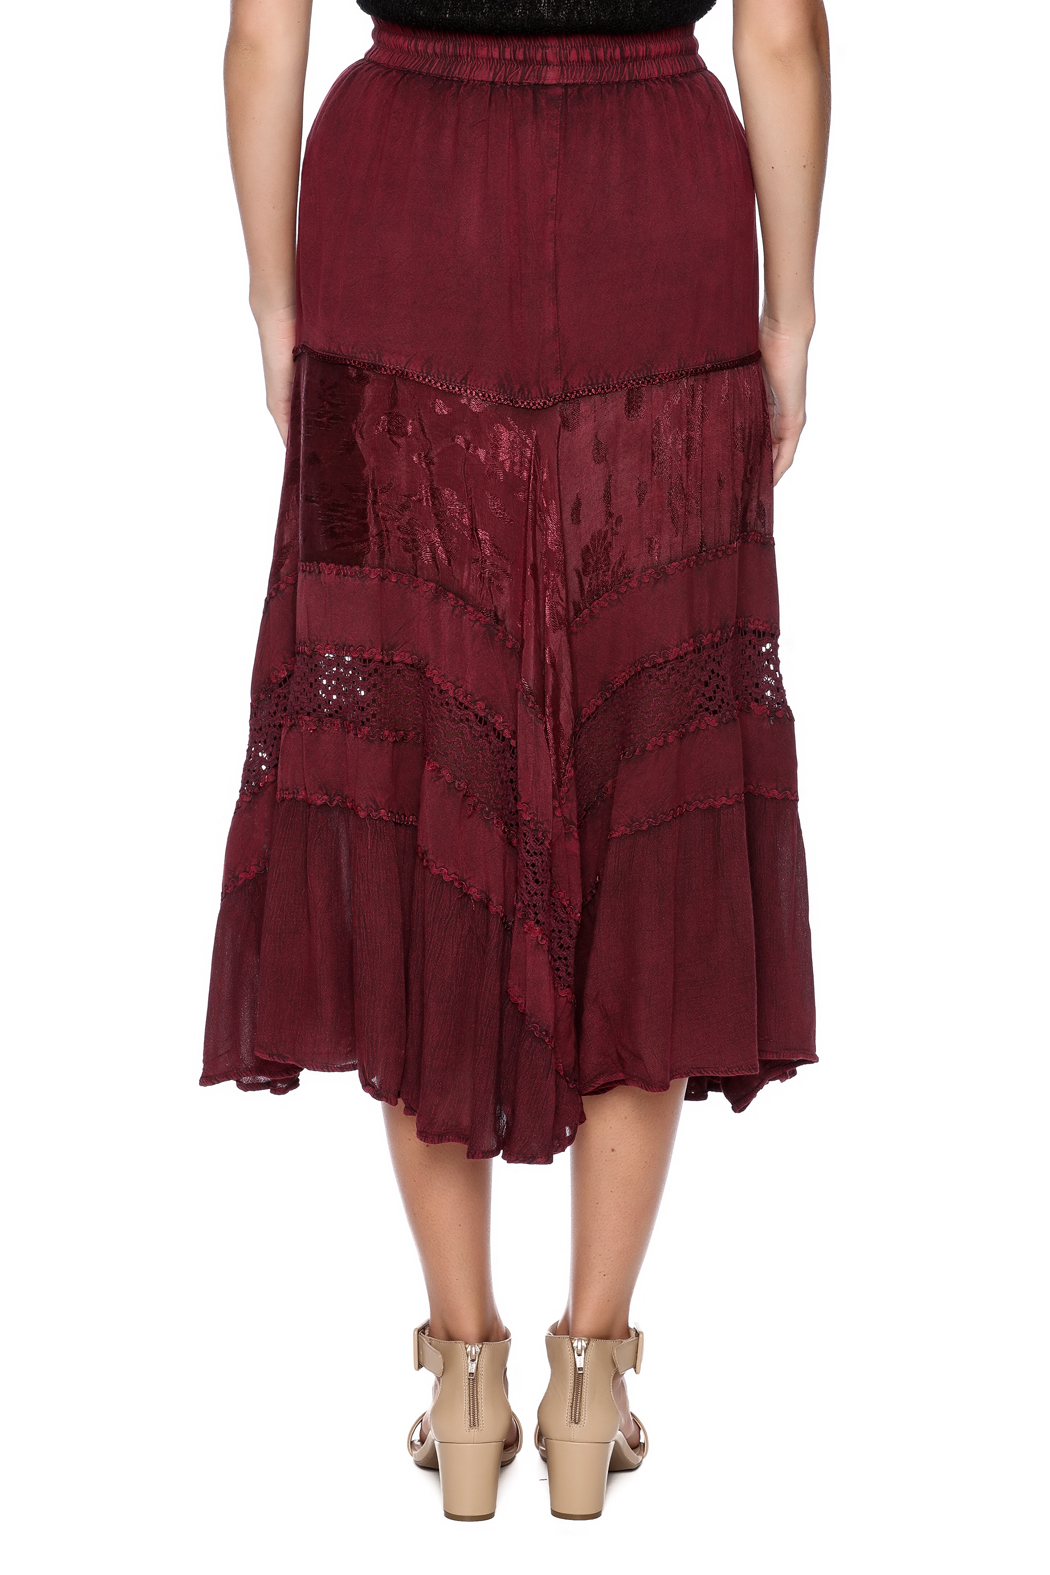 Magic Scarf Chic Linen and Lace Skirt - Back Cropped Image